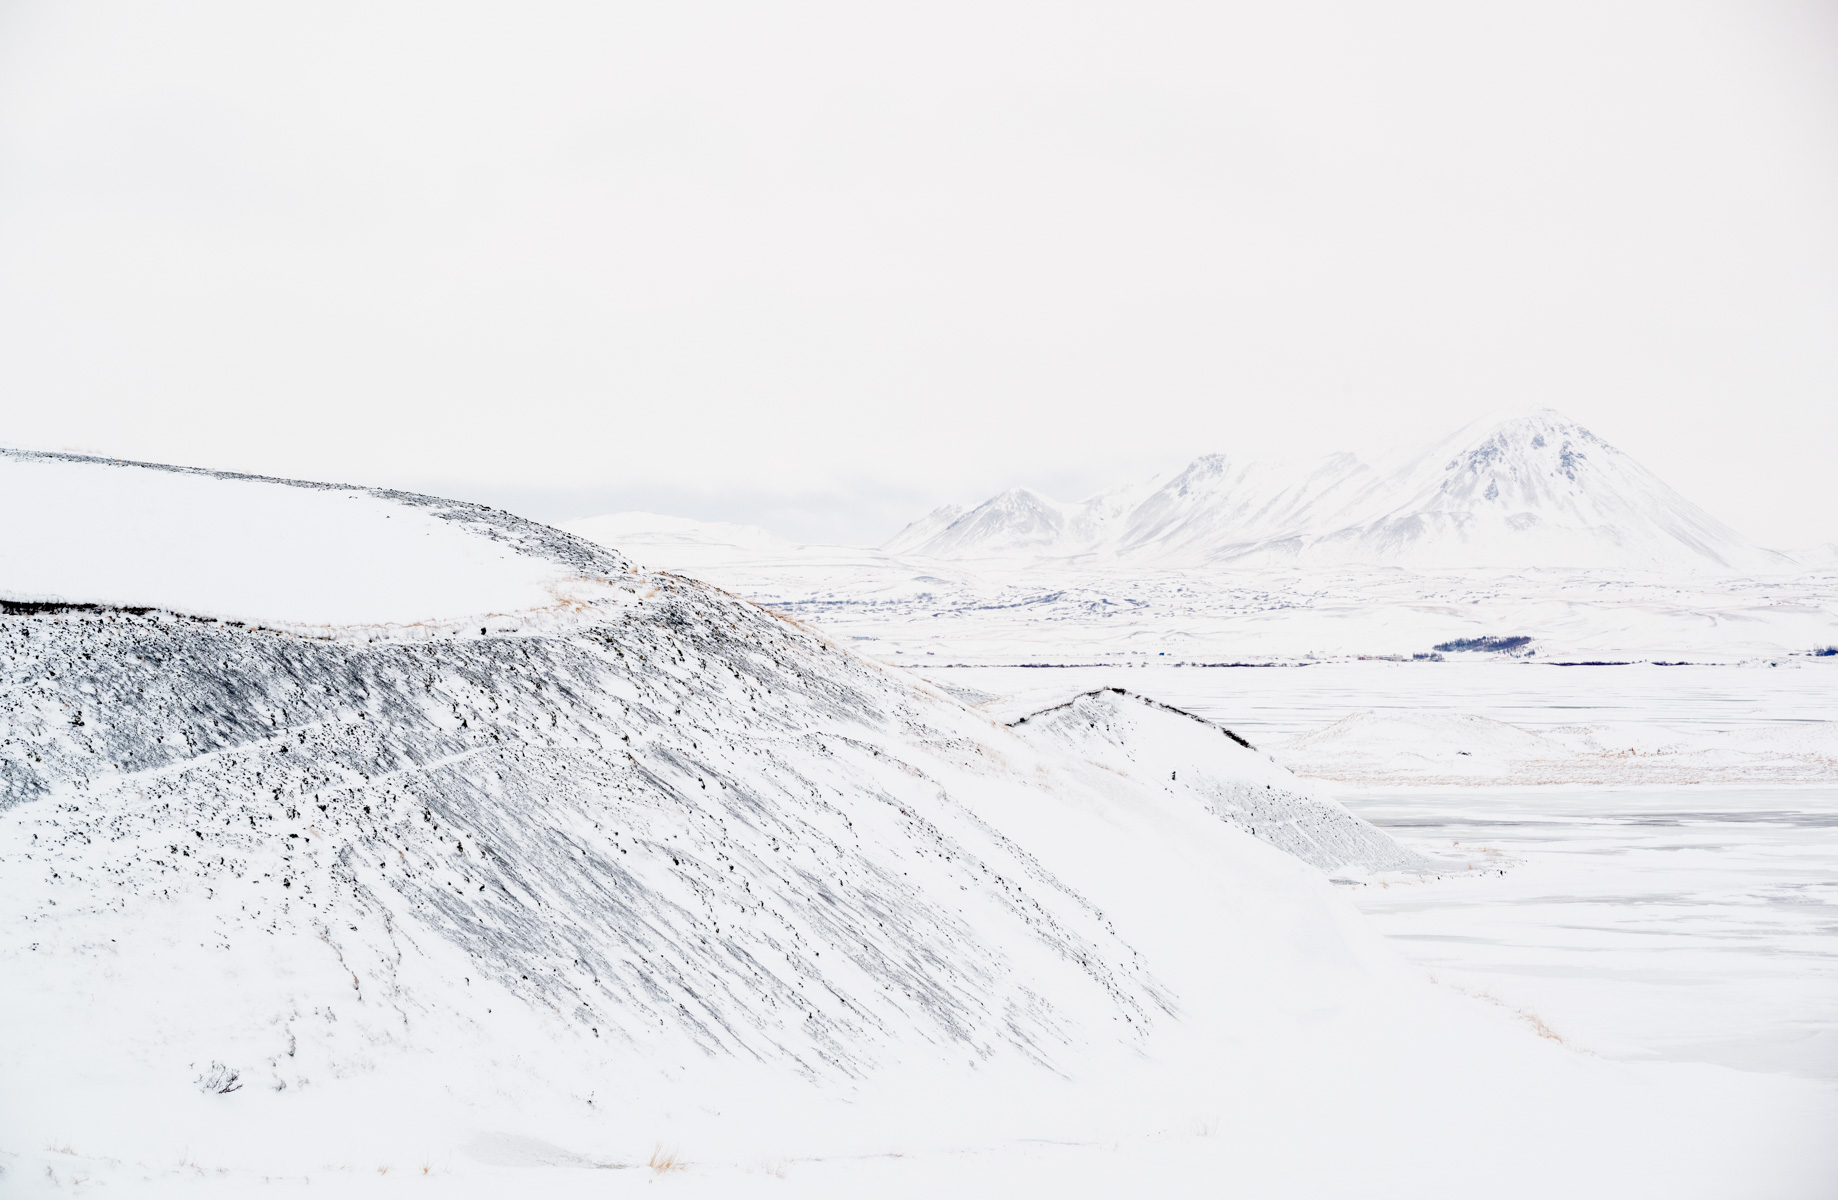 Lake Myvatn, Iceland, in winter, with craters and pseudocraters,